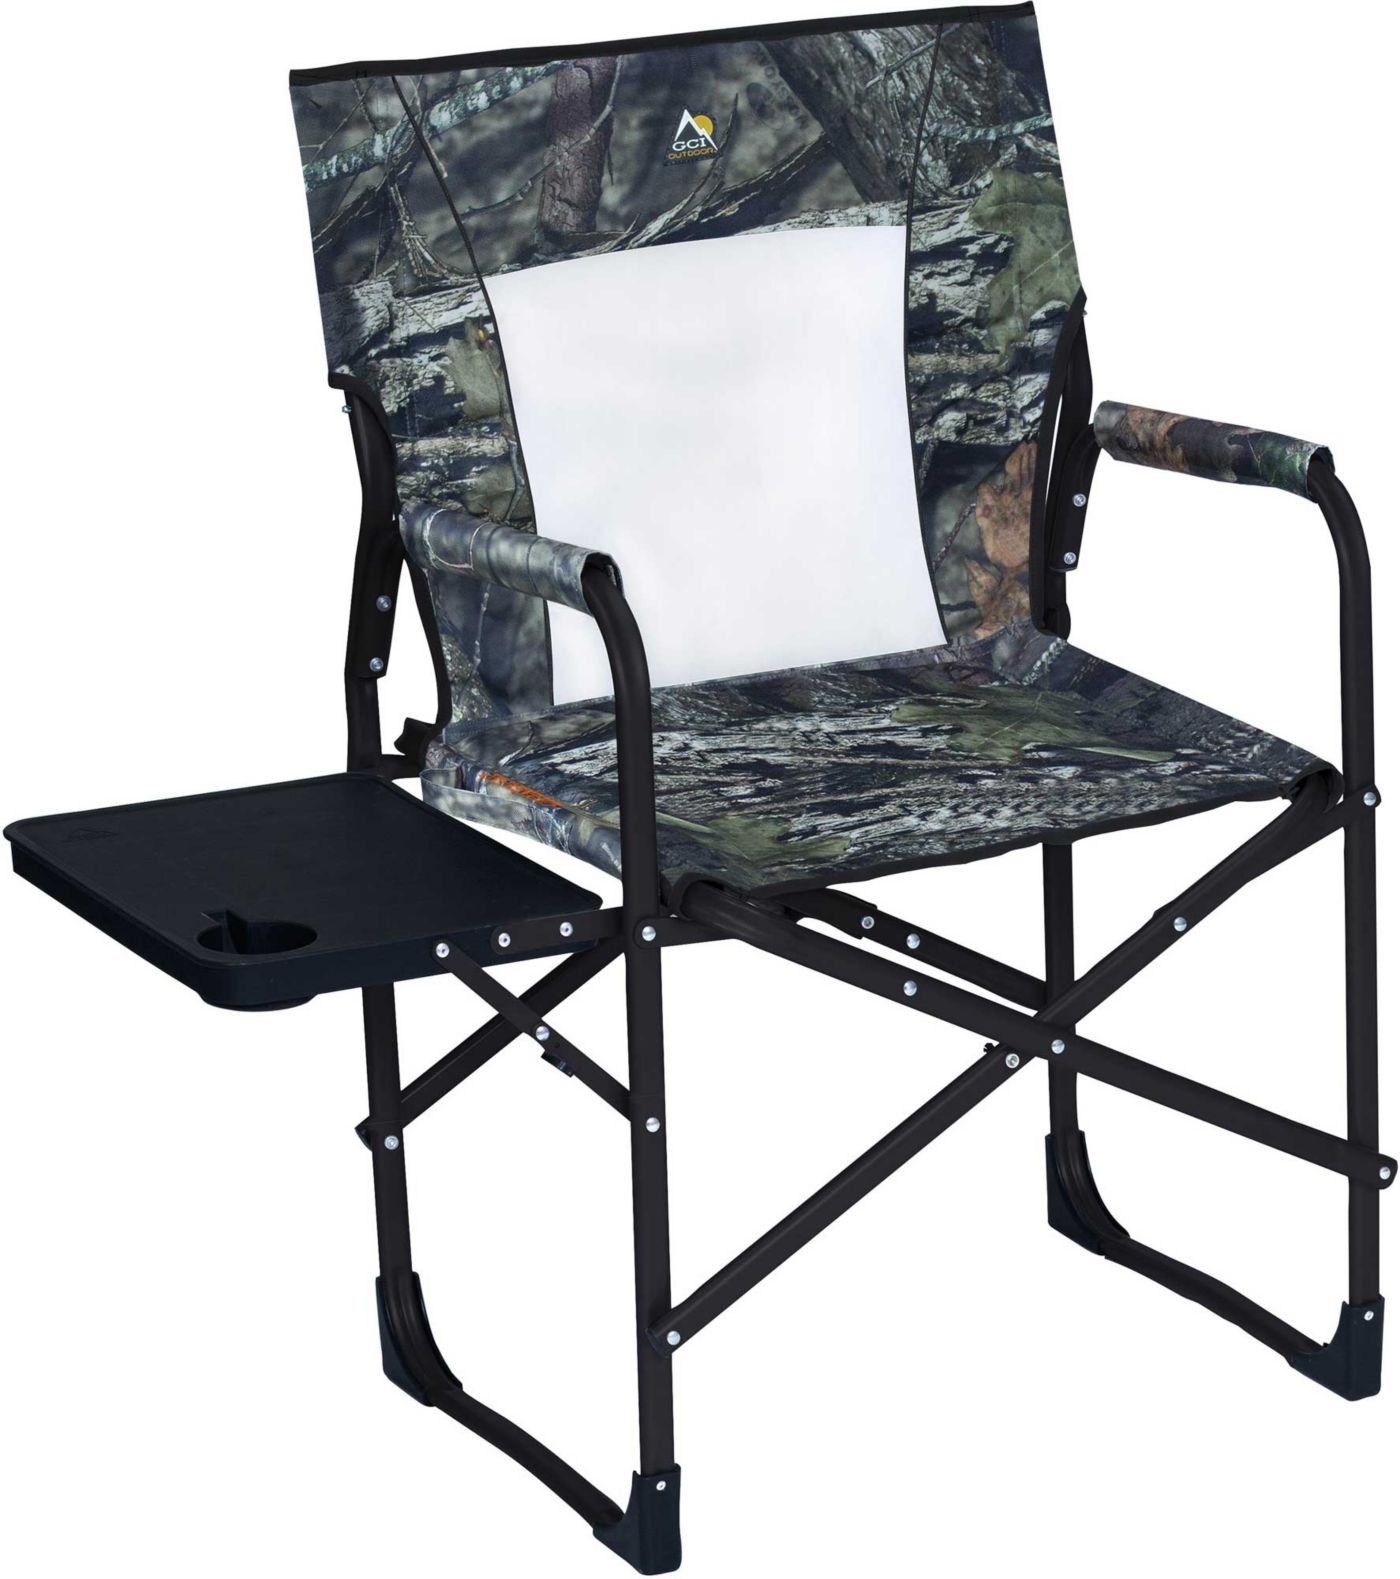 Gci Outdoor Camo Slim Fold Director S Chair Field Amp Stream